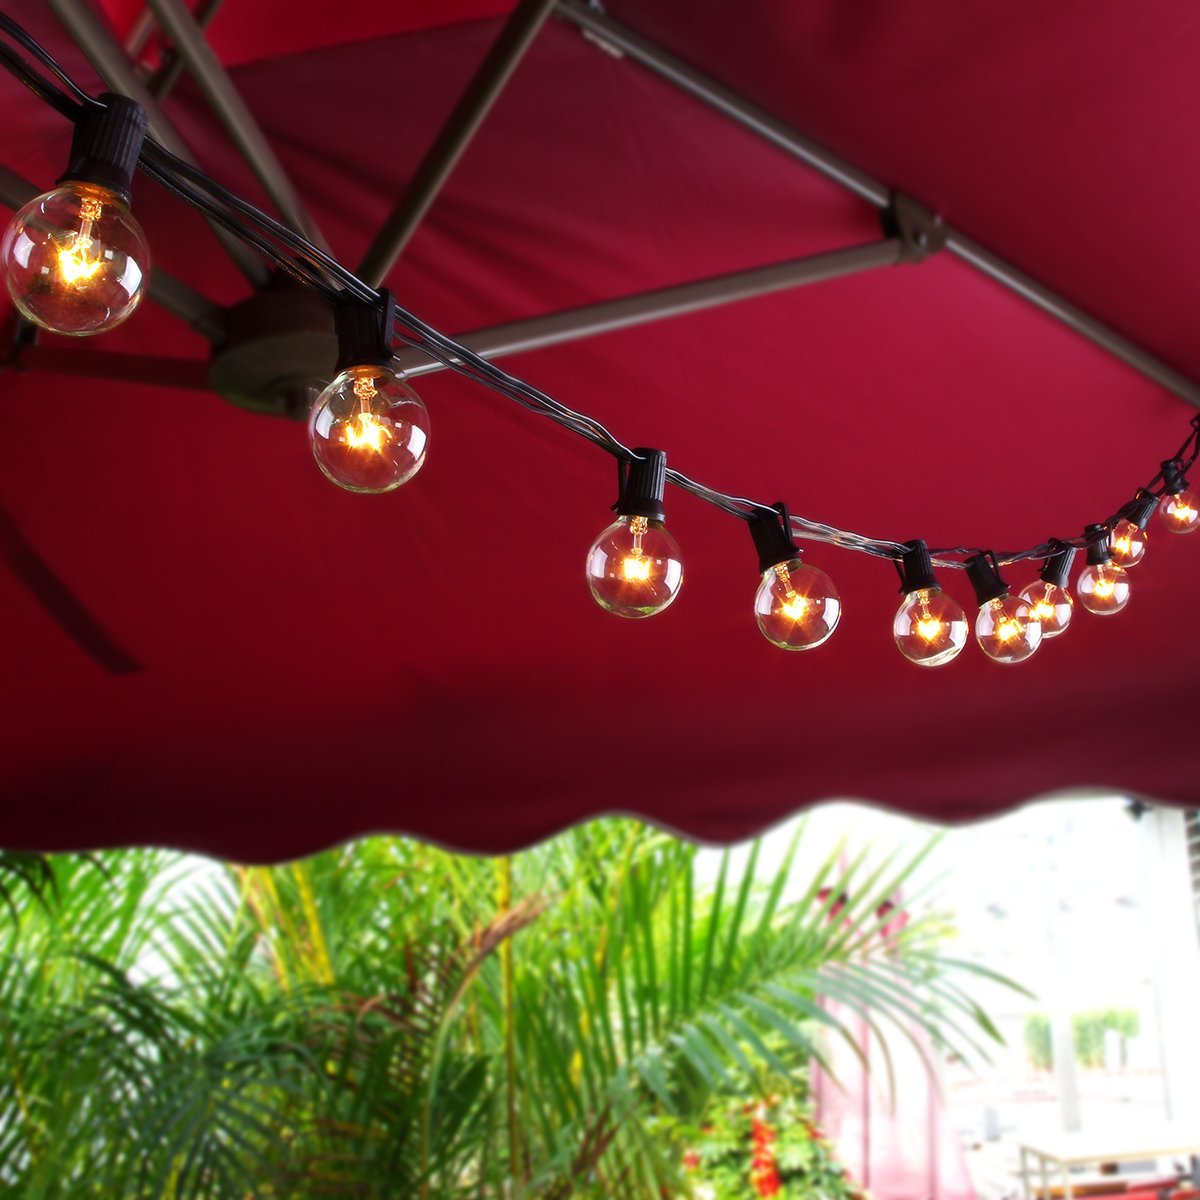 Outdoor String Lights Manufacturer : Zitrades Globe String Lights with G40 Bulbs UL Listed 25ft Outdoor String Lights eBay